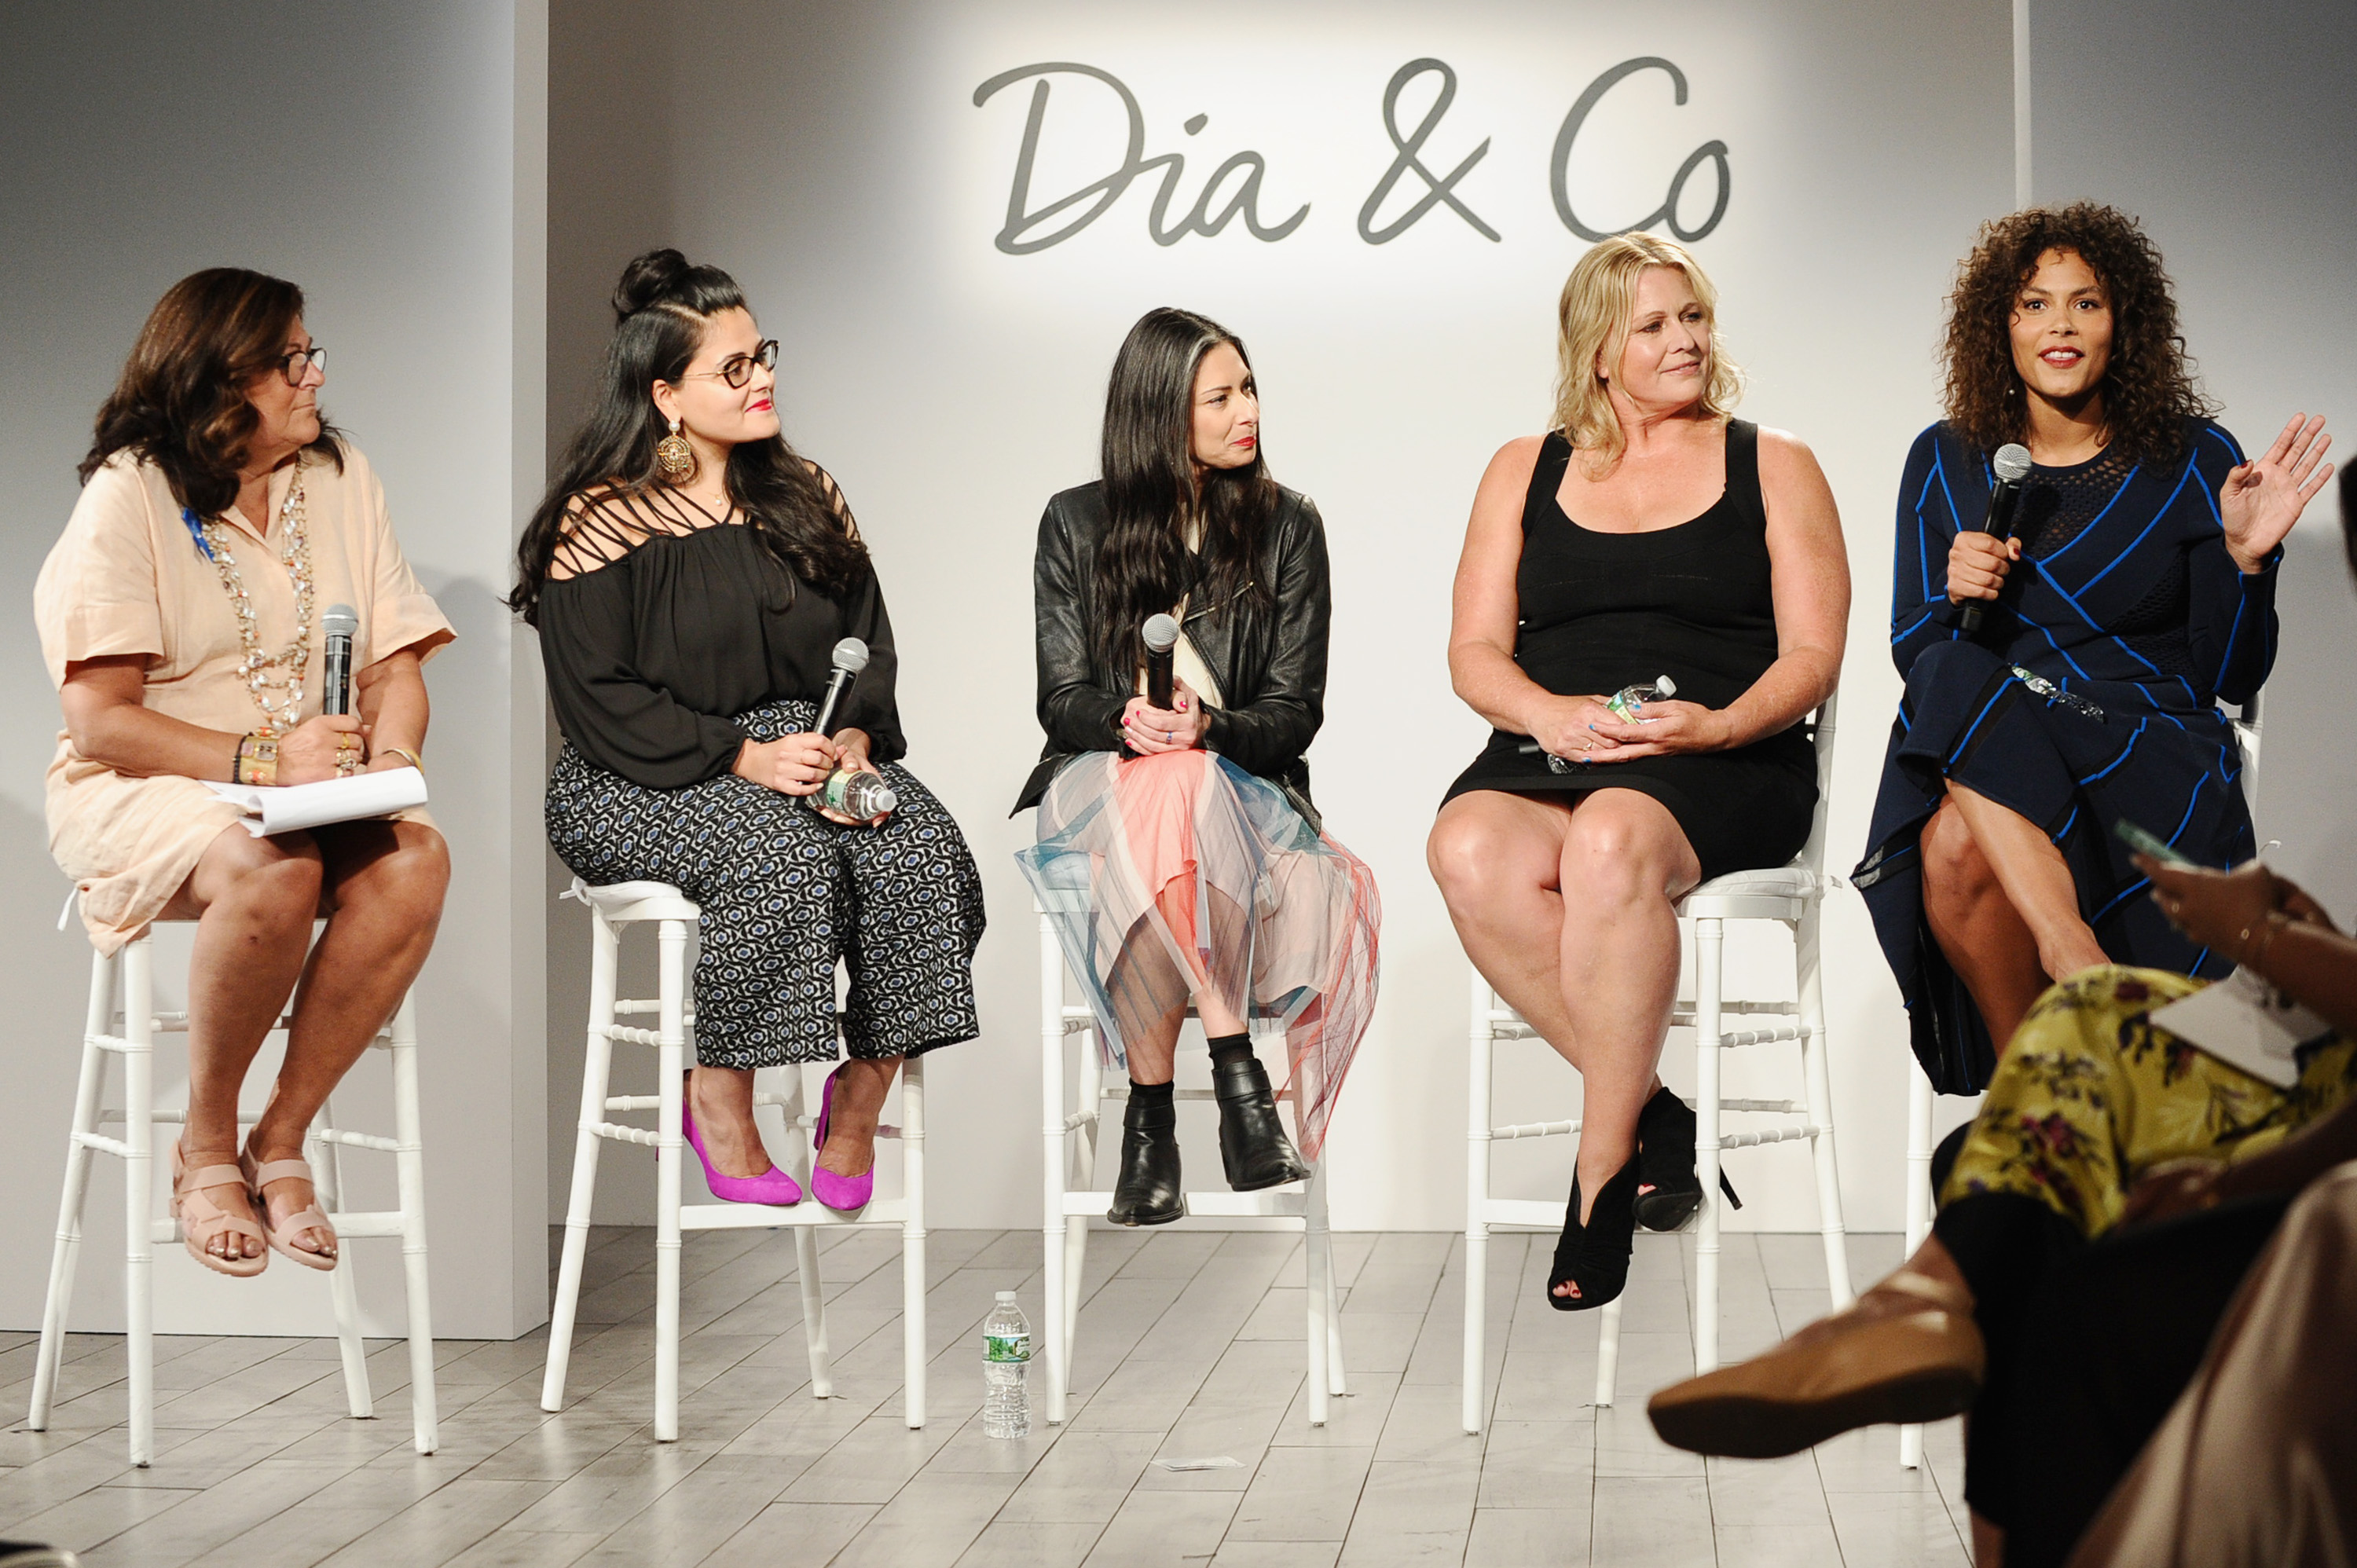 Fern Mallis, Nadia Boujarwah, Stacy London, Emme Aronson and Marquita Pring speak onstage during the Dia&Co fashion show and industry panel at the CURVYcon at Metropolitan Pavilion West on September 8, 2017 in New York City. (Photo by Daniel Zuchnik/Getty Images for Dia&Co,)